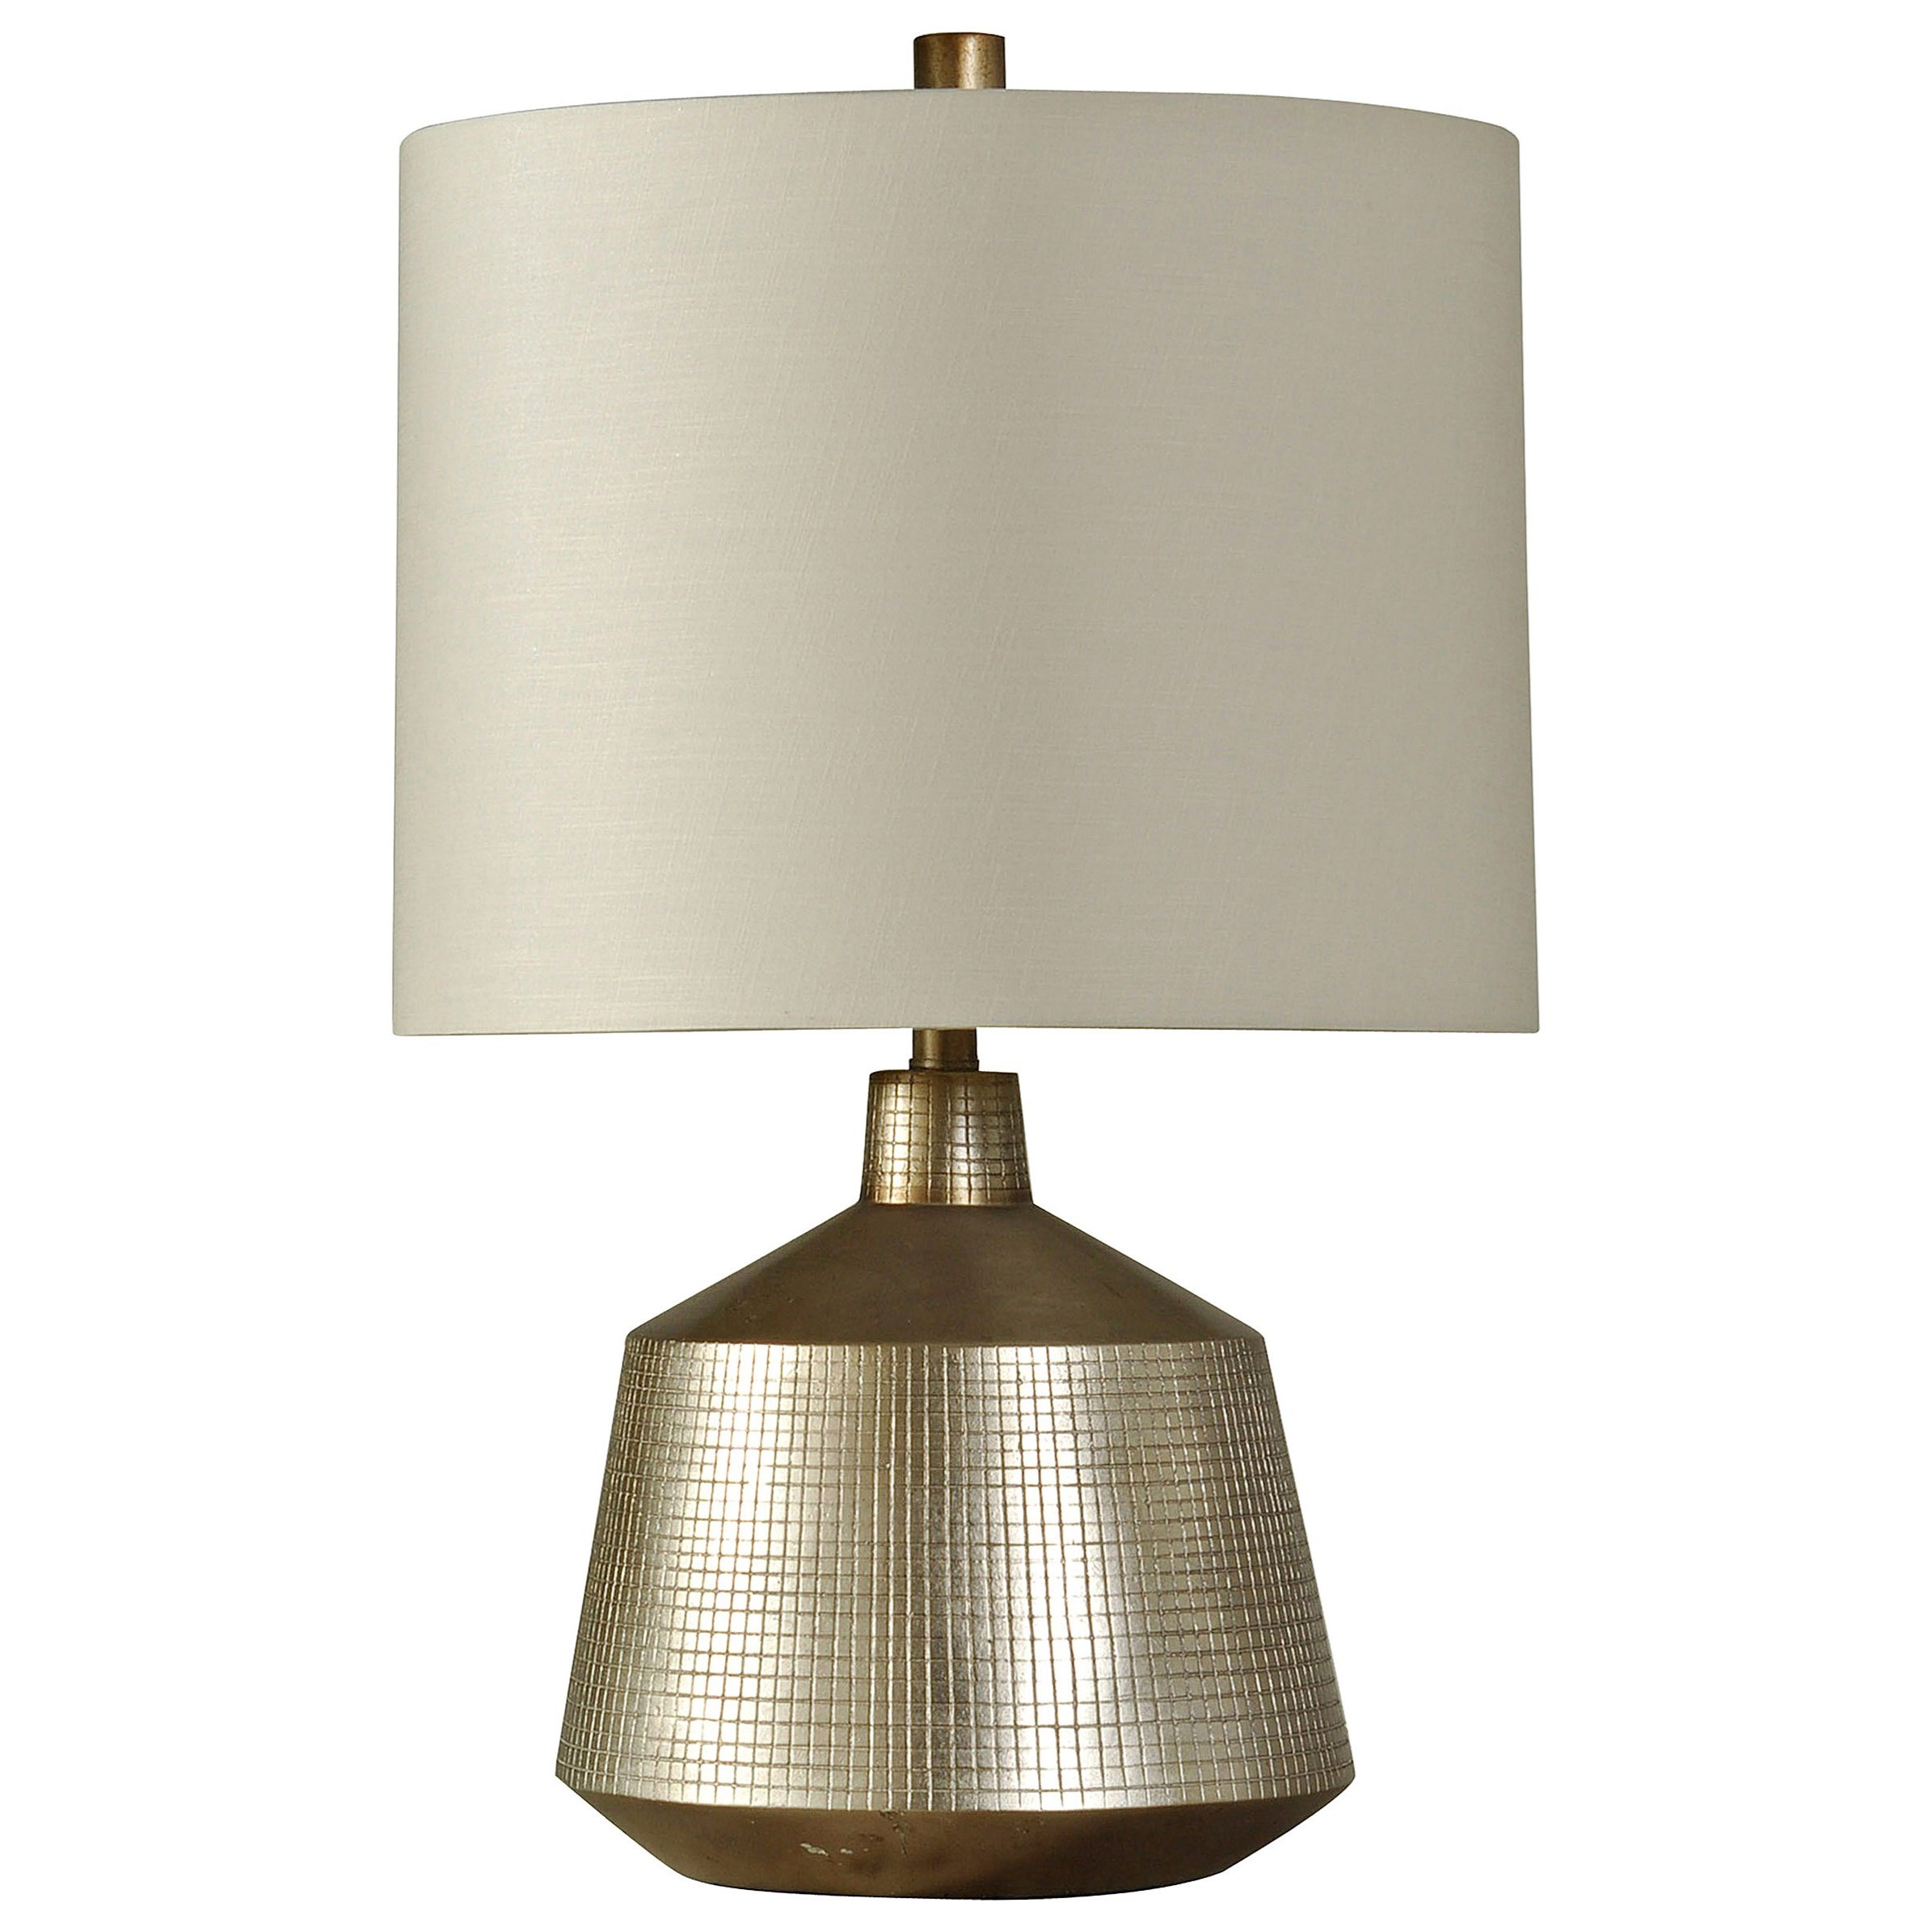 Lamps Contemporary Accent Lamp by StyleCraft at Alison Craig Home Furnishings